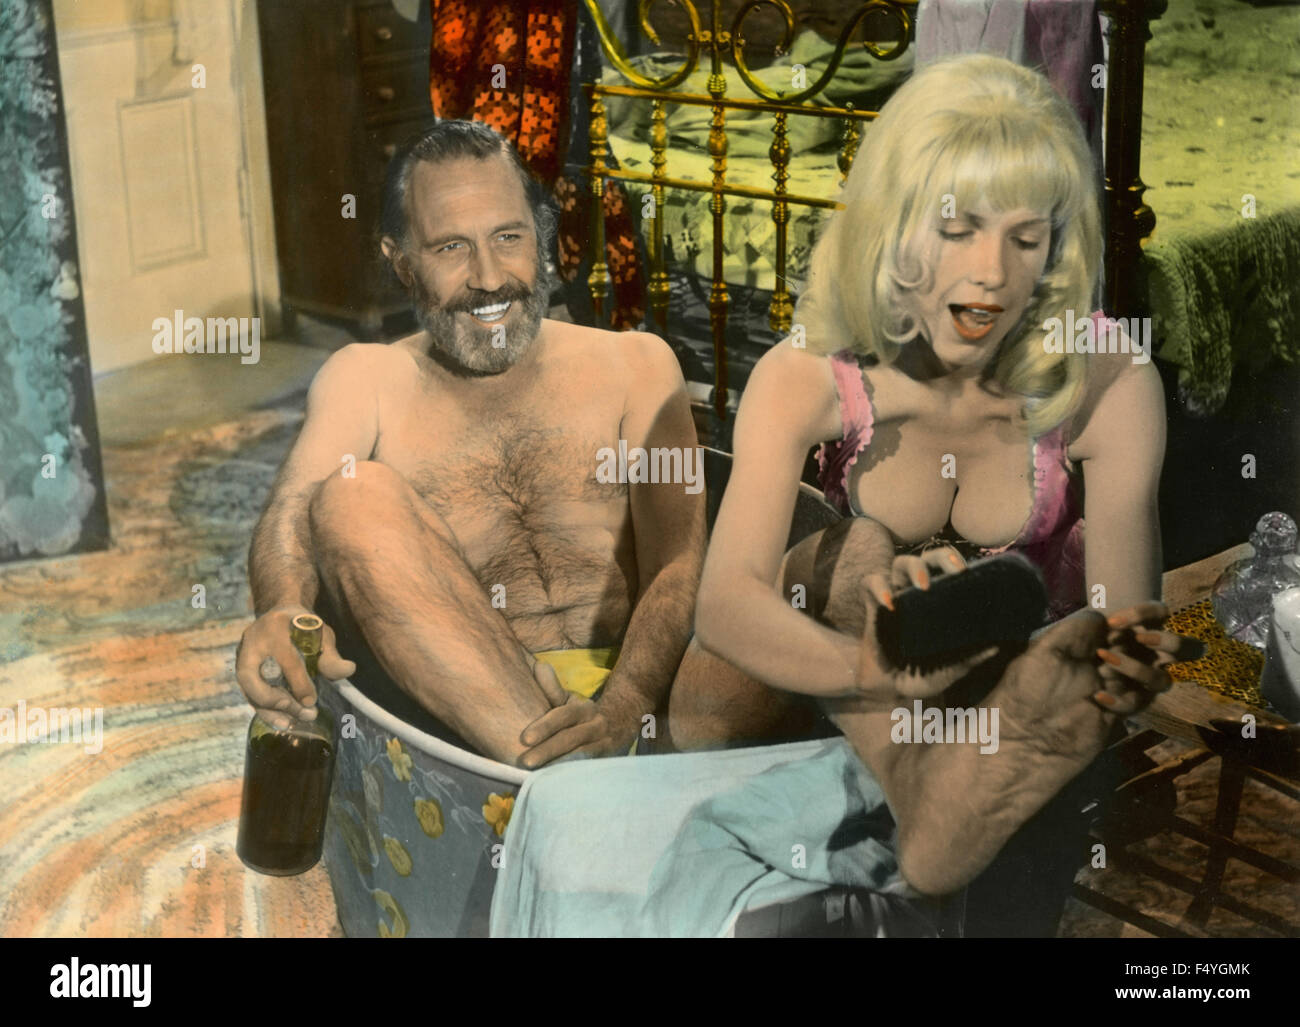 Jason Robards and Stella Stevens in the movie The Ballad of Cable Hogue, 1970 - Stock Image